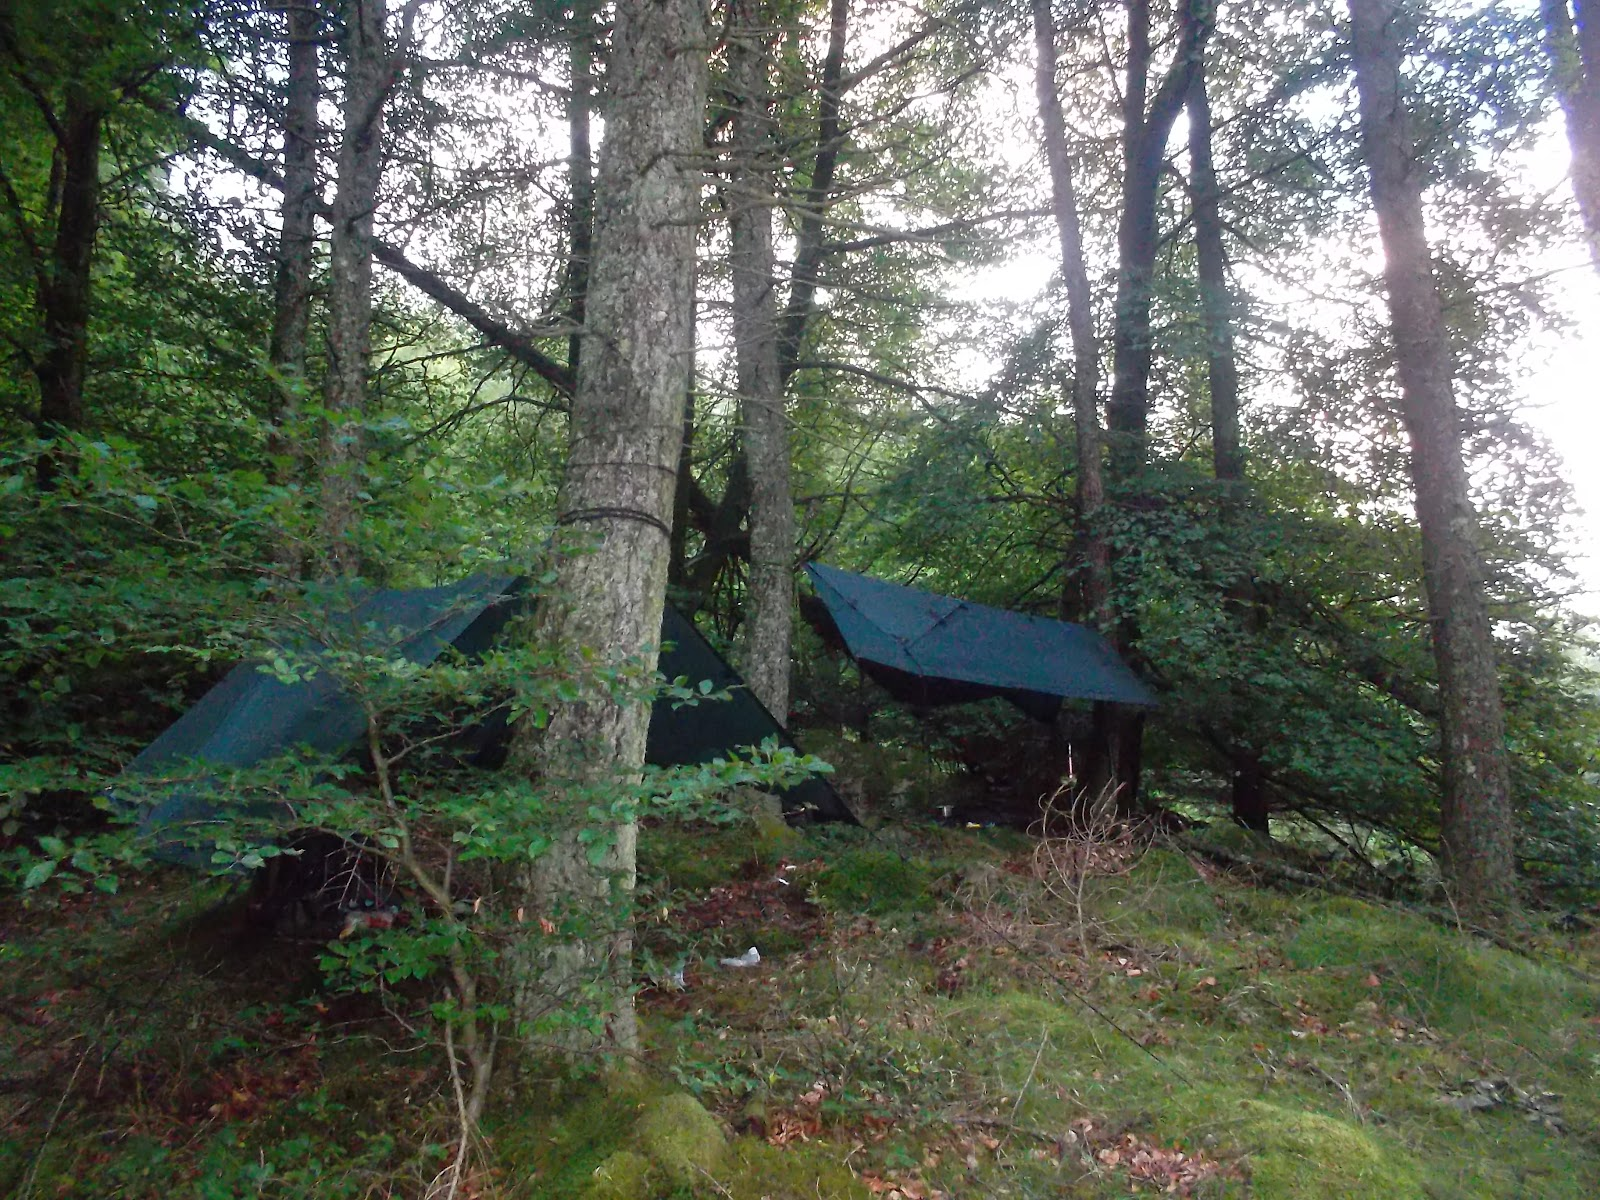 The Secret Camper Wild Camping And Hiking For 2 Days And